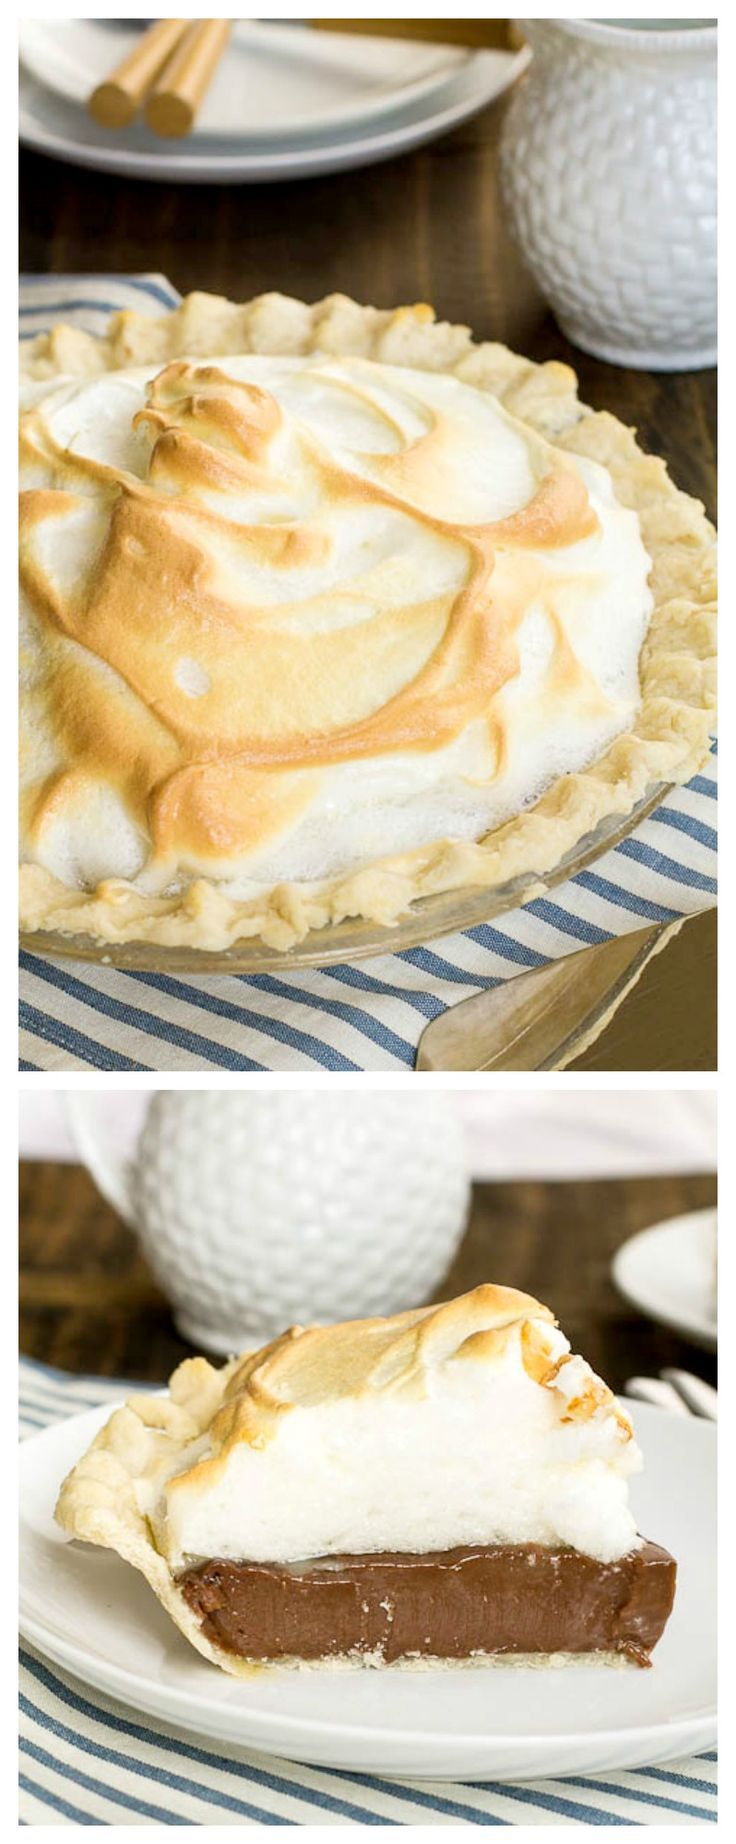 Old-fashioned Chocolate Meringue Pie - just like grandmother made!